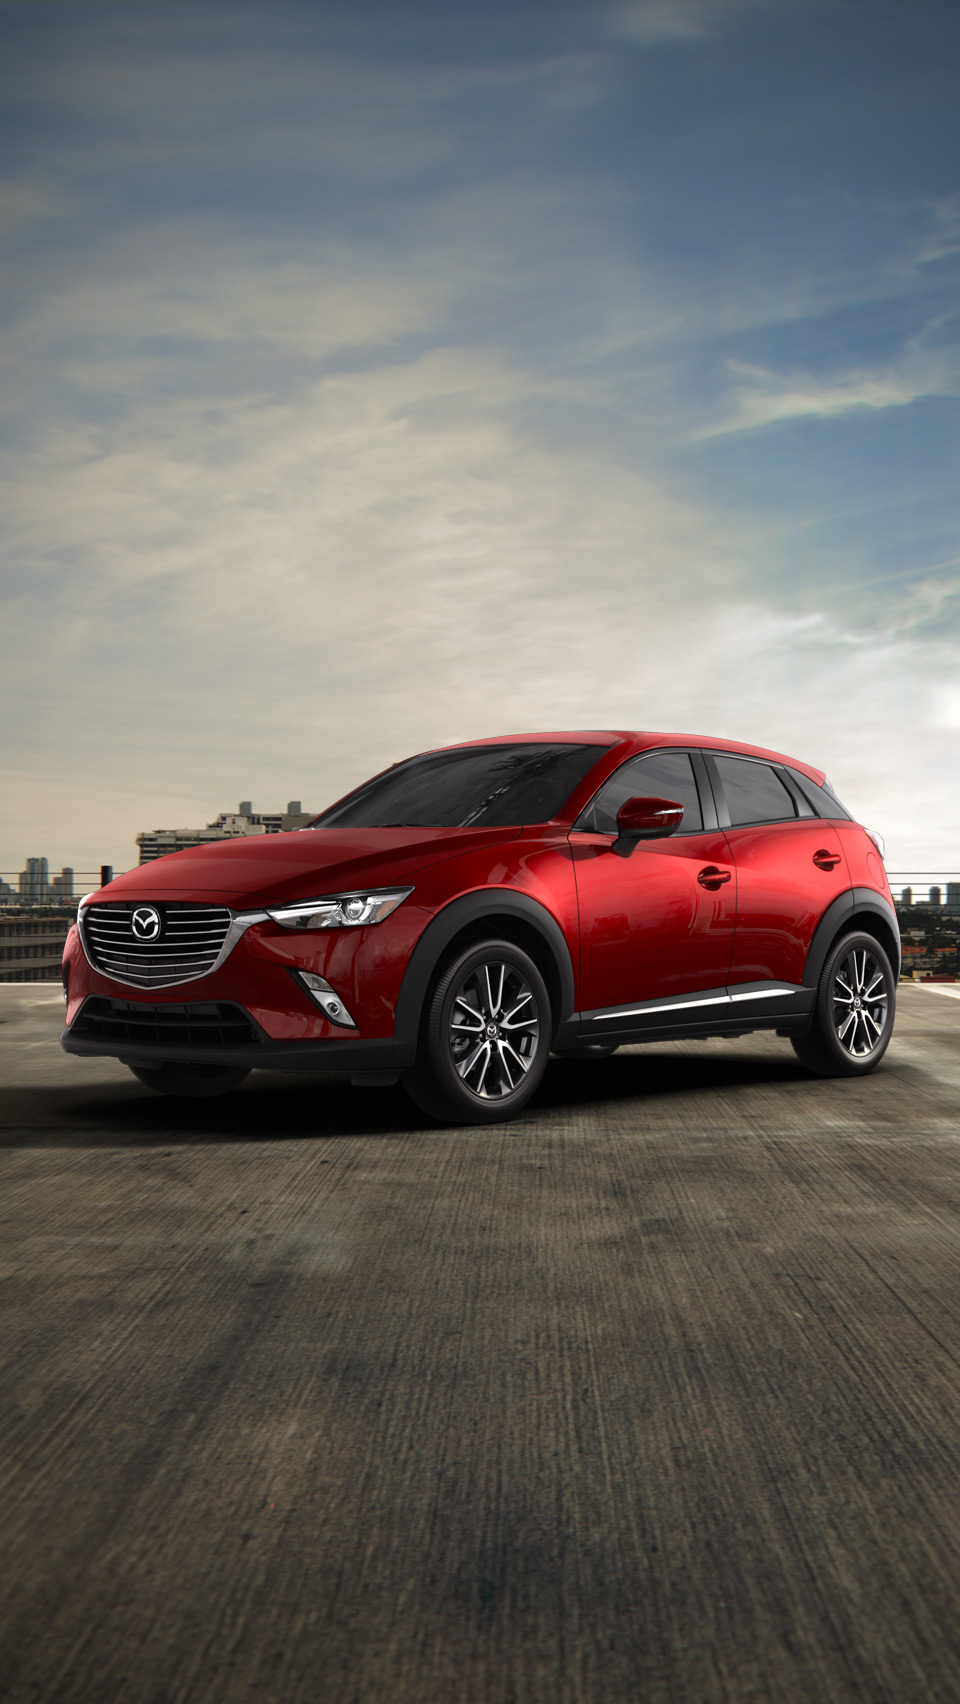 mazda cx 3 crossover subcompacto 2017 utilitarios compactos mazda usa. Black Bedroom Furniture Sets. Home Design Ideas